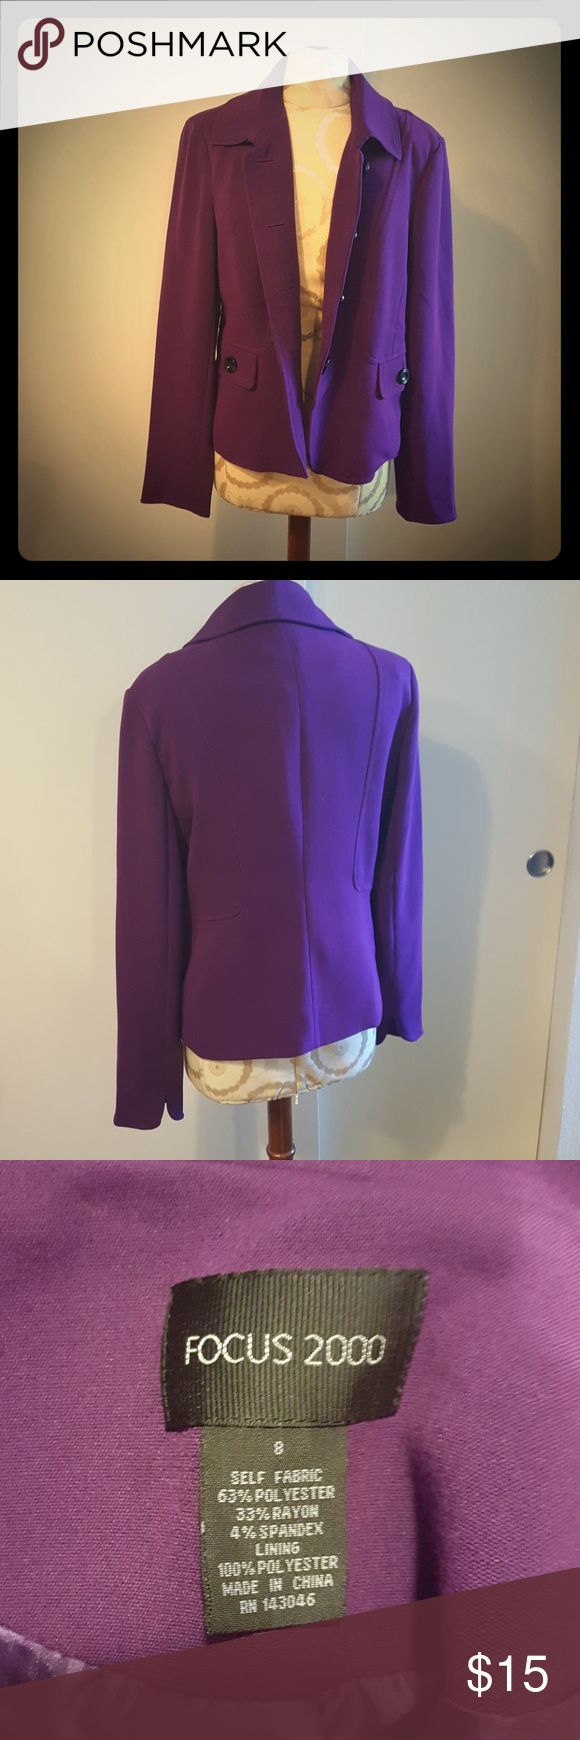 Focus 2000 purple blazer Stunning purple button up blazer. Can be dressed up or used with casual jeans! Focus 2000 Jackets & Coats Blazers